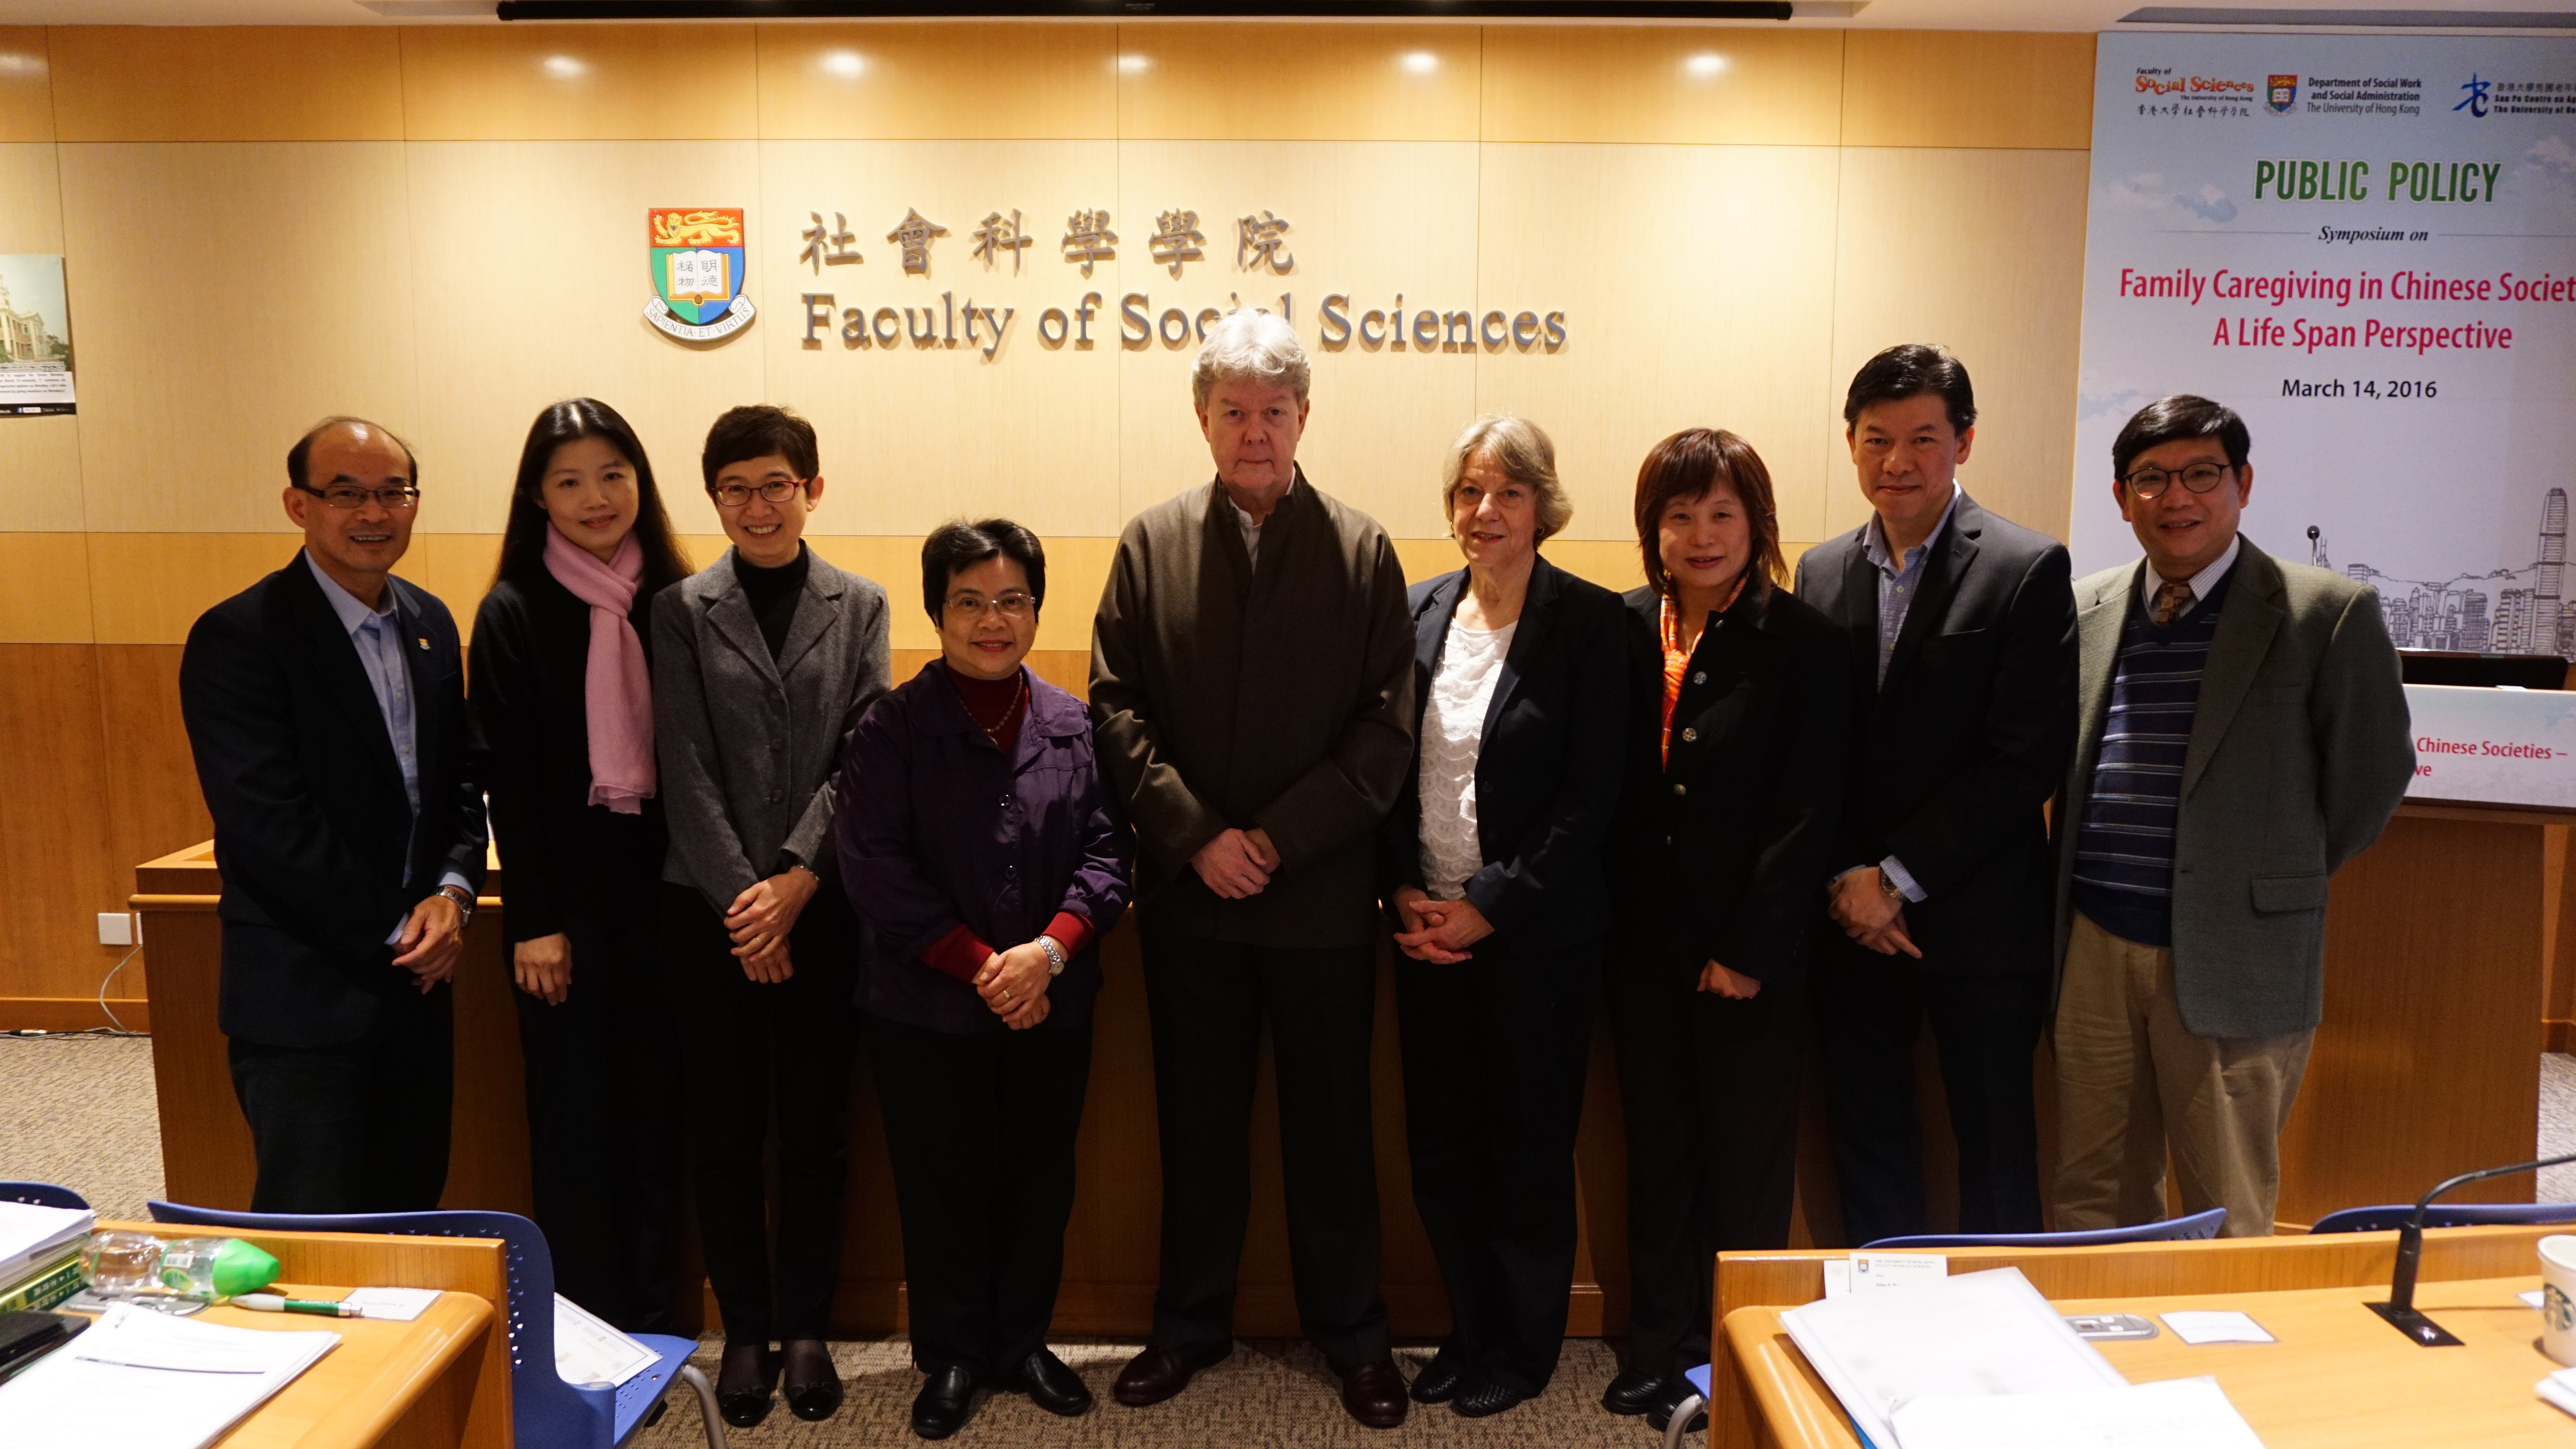 Symposium on Family Caregiving in Chinese Societies